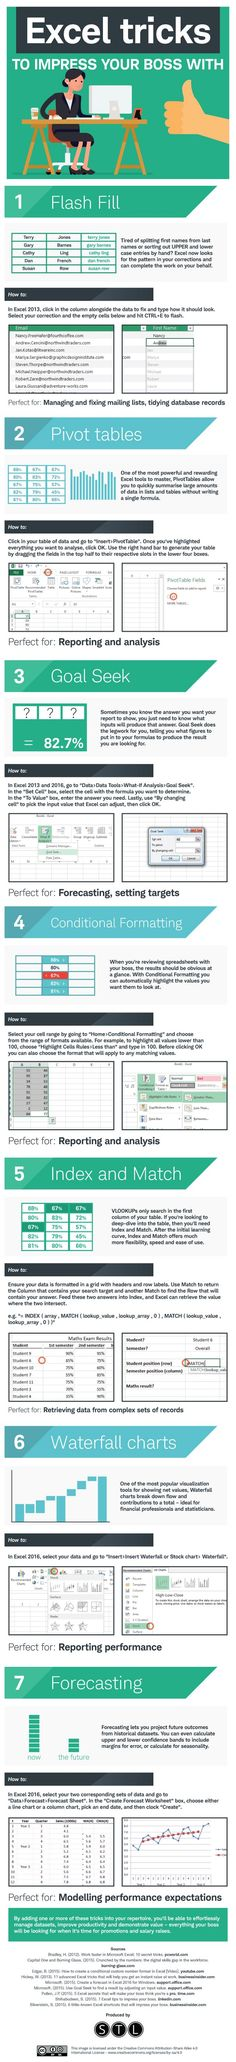 Excel tricks to impress your boss - Imgur